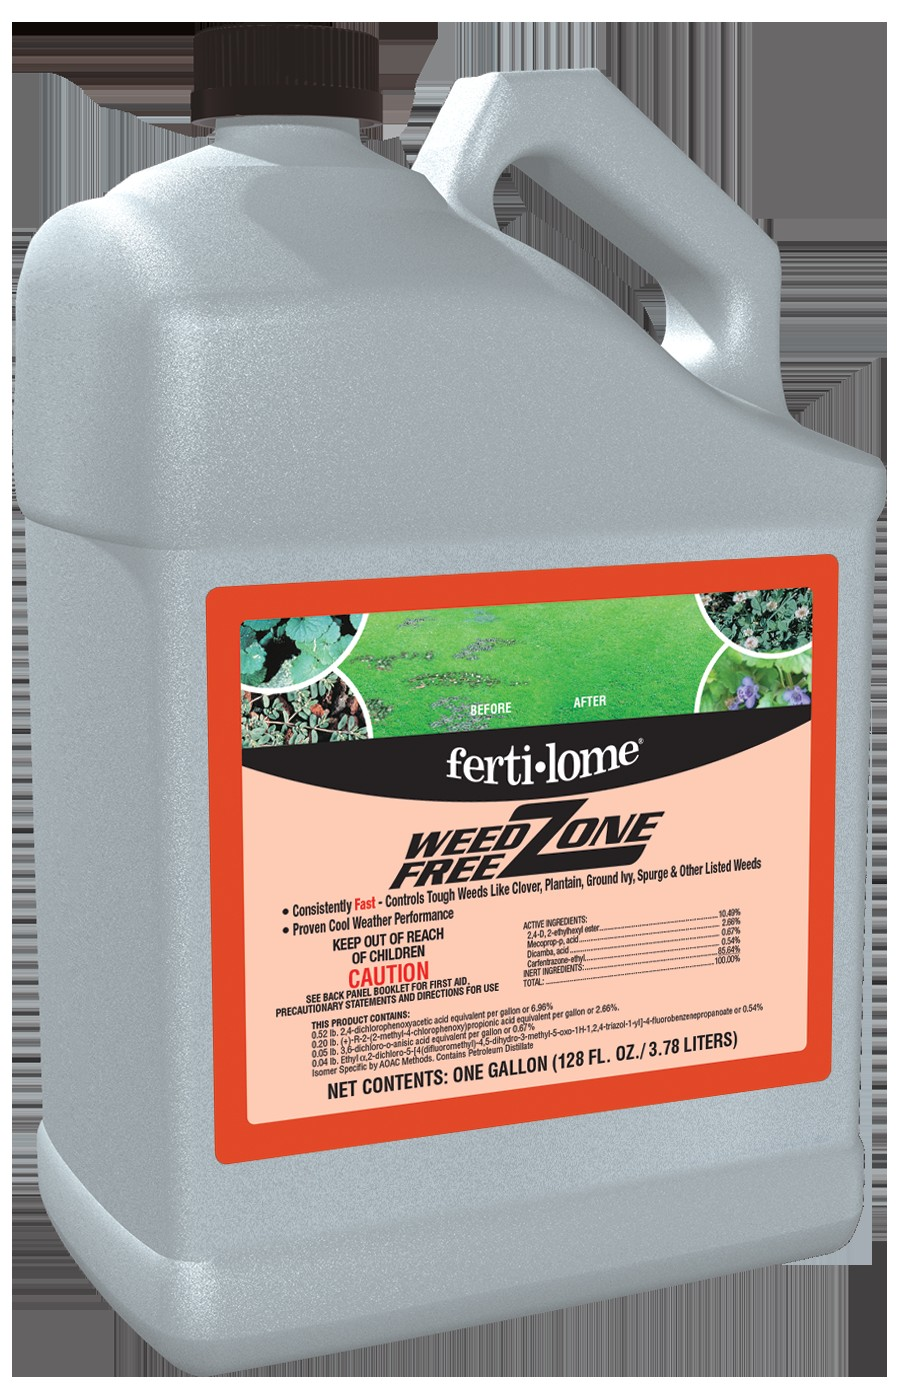 10529 weed free zone one gallon glamour l 1 56 mb